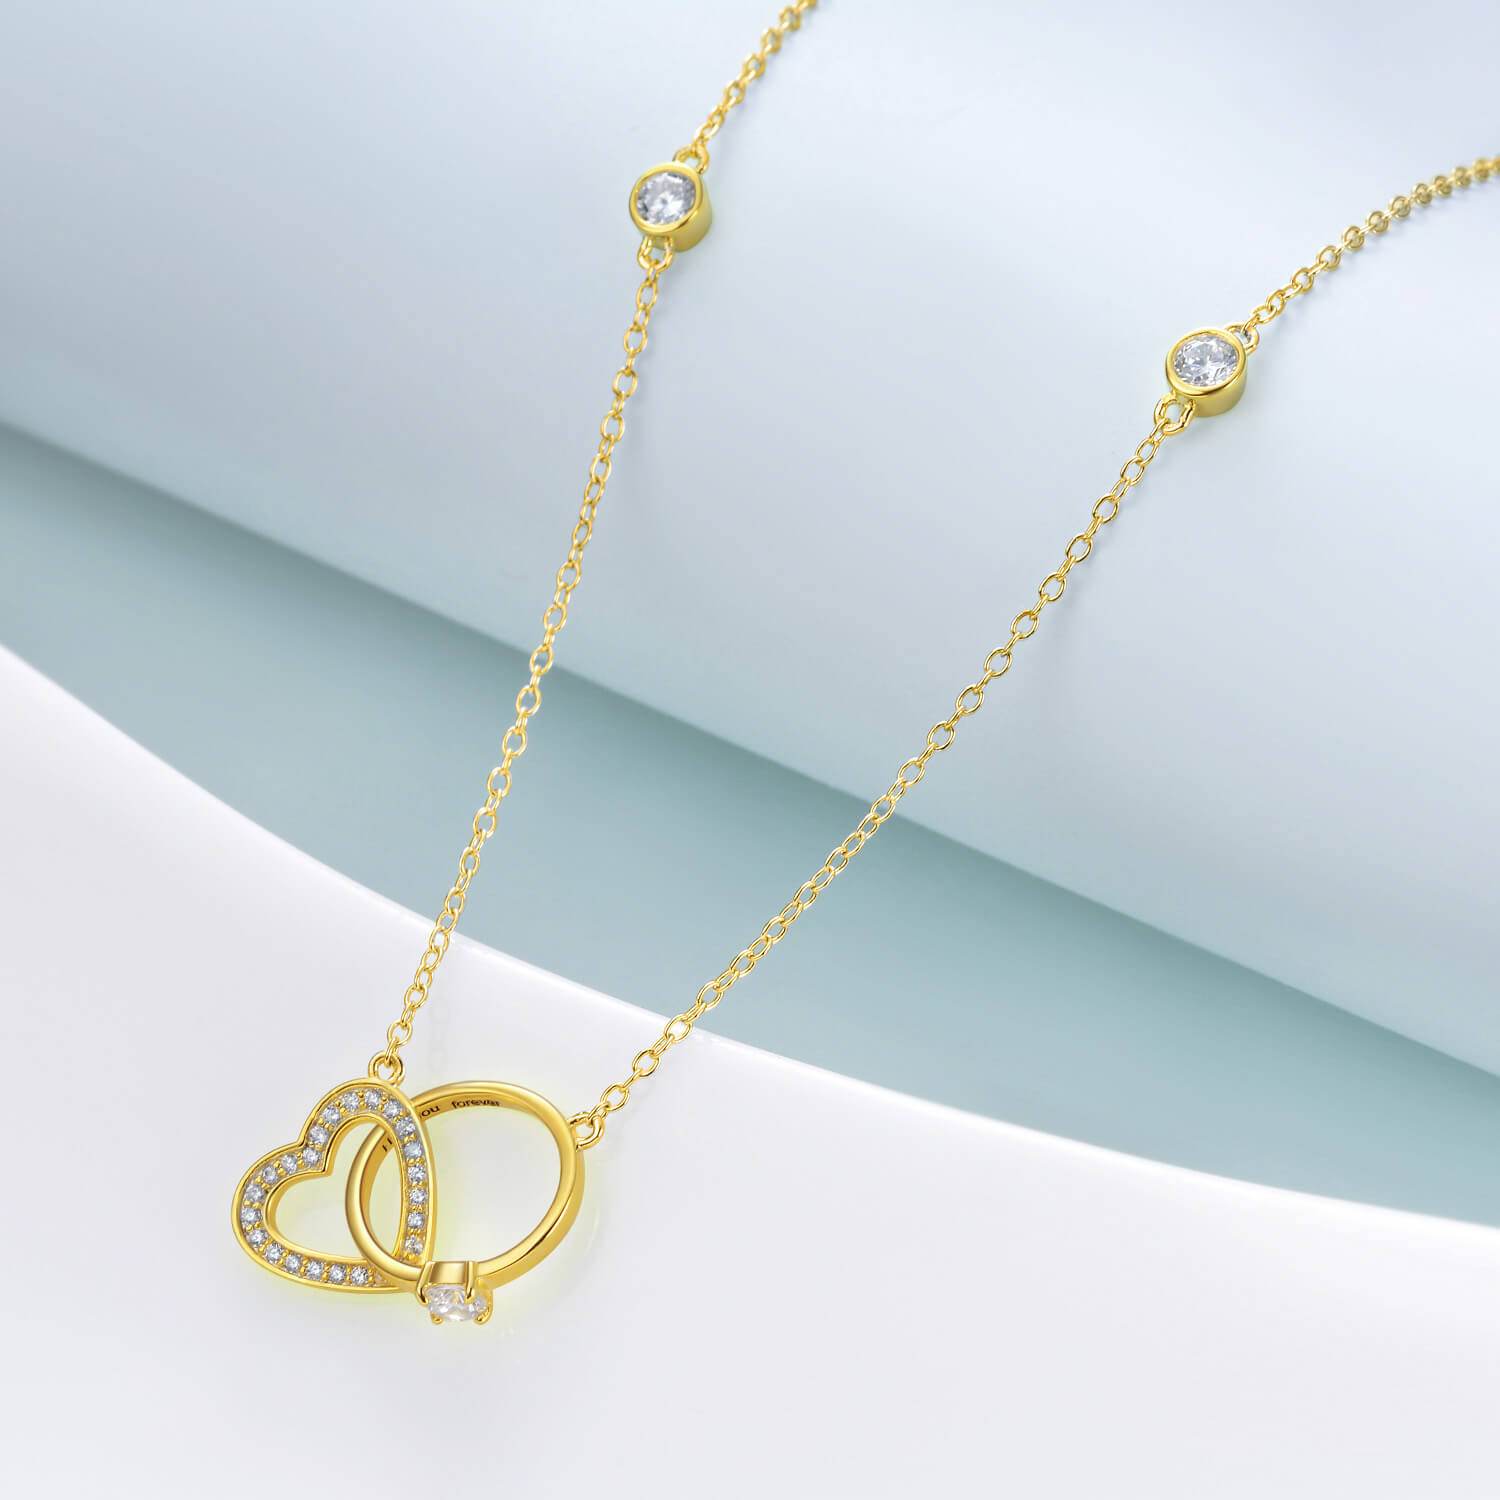 925 Sterling Silver Interlocking Heart Circle Necklace I Love You Engraved - onlyone